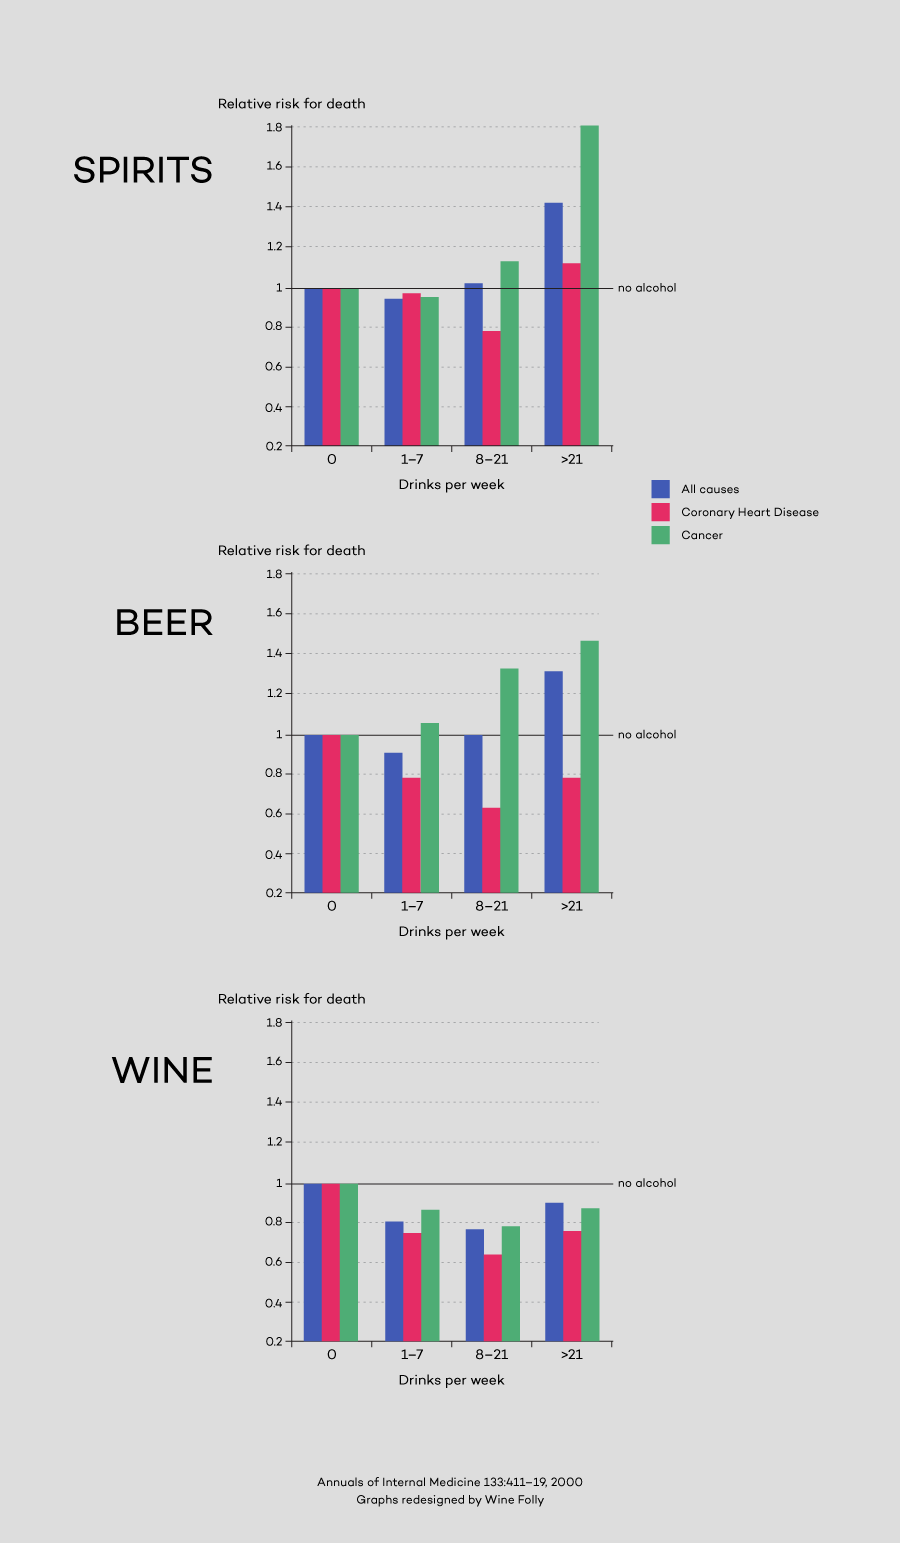 alcohol-use-cancer-heart-wine-beer